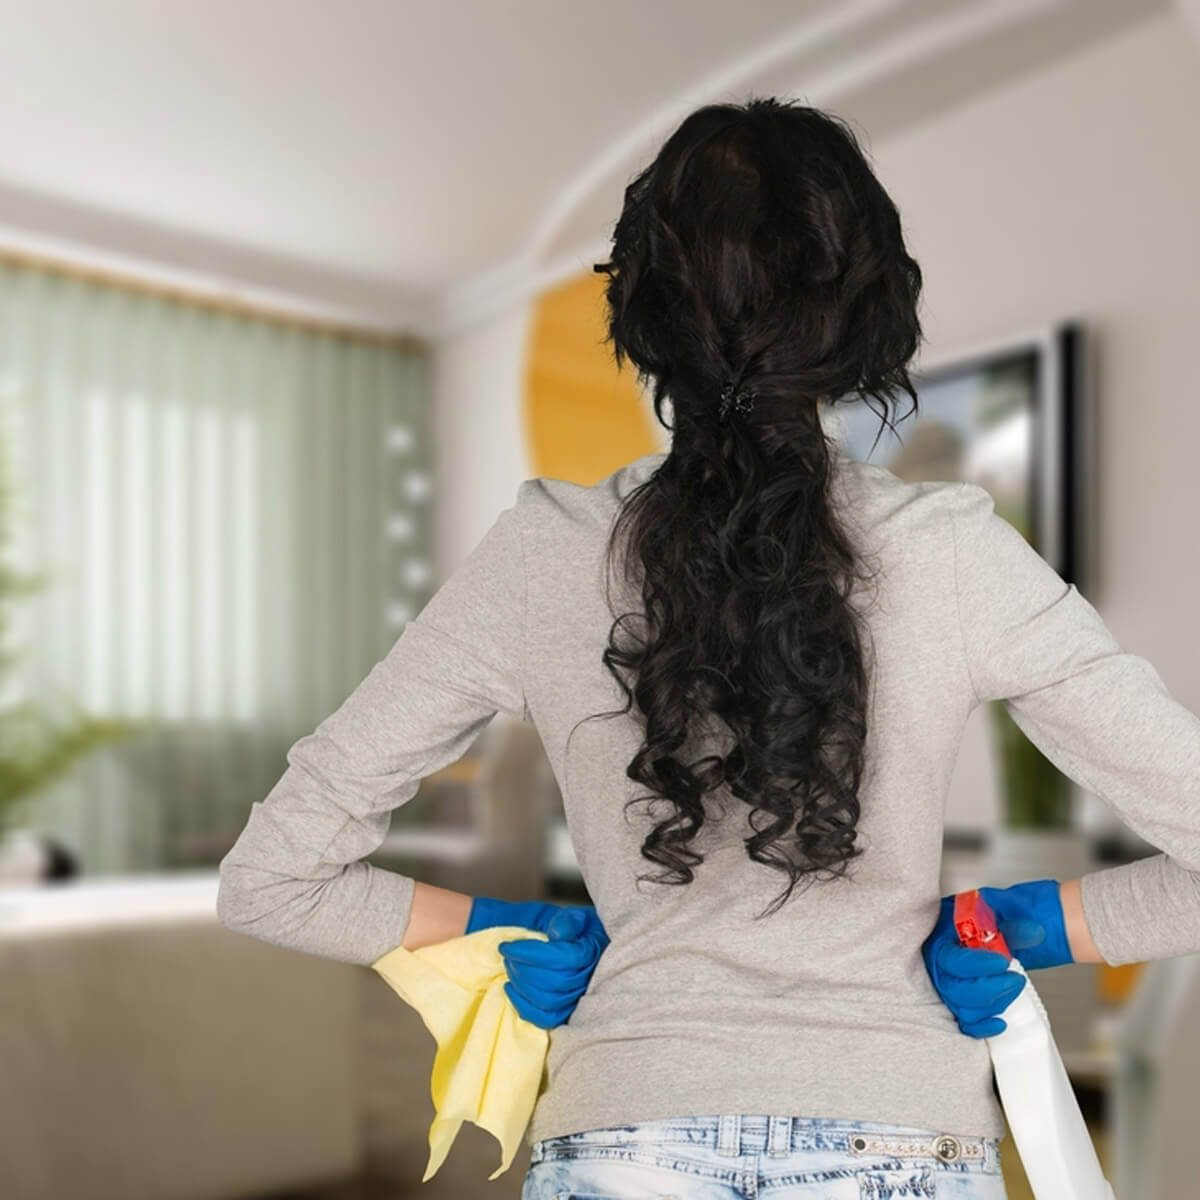 shutterstock_532219216 cleaning